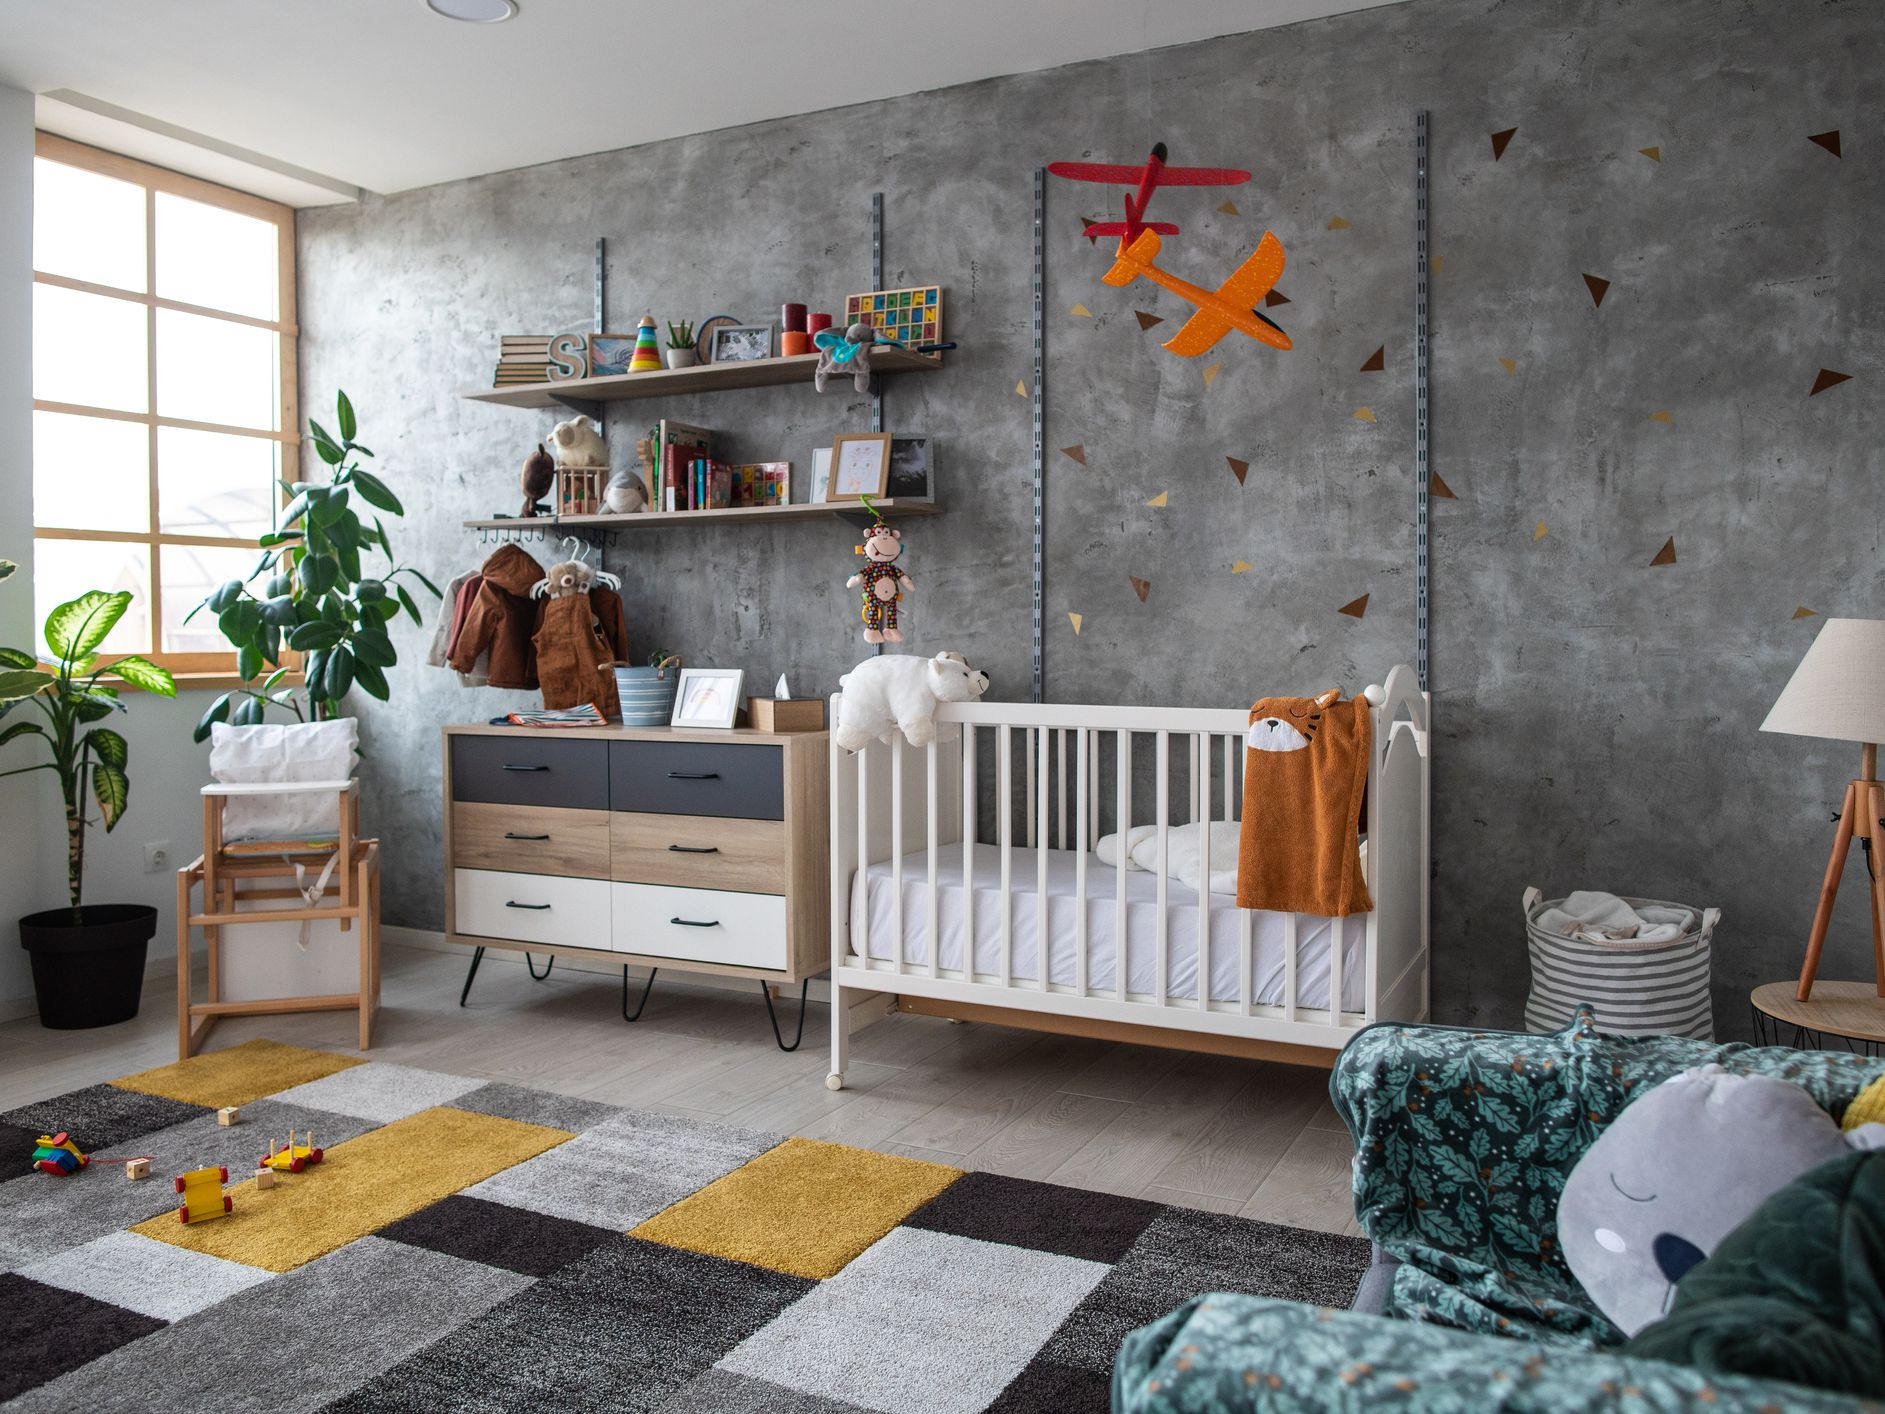 5 Tips for Sharing a Bedroom With Baby